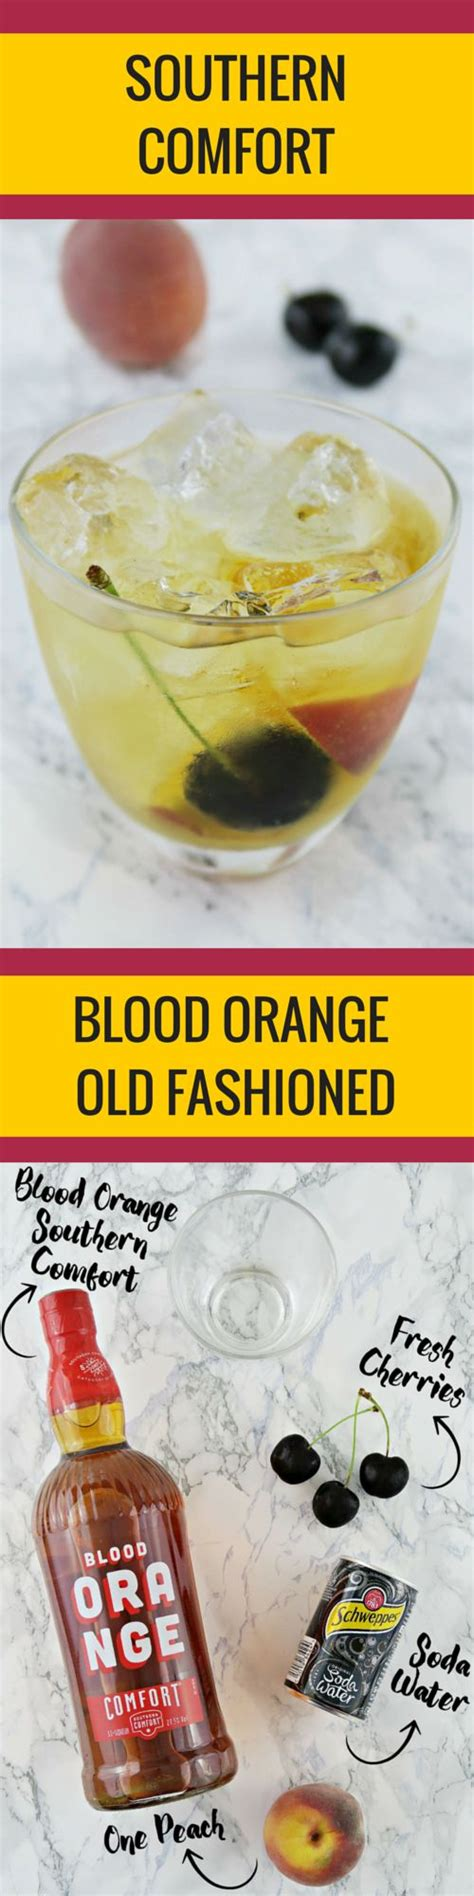 southern comfort old fashioned recipe blood orange southern comfort cocktail recipe ideas